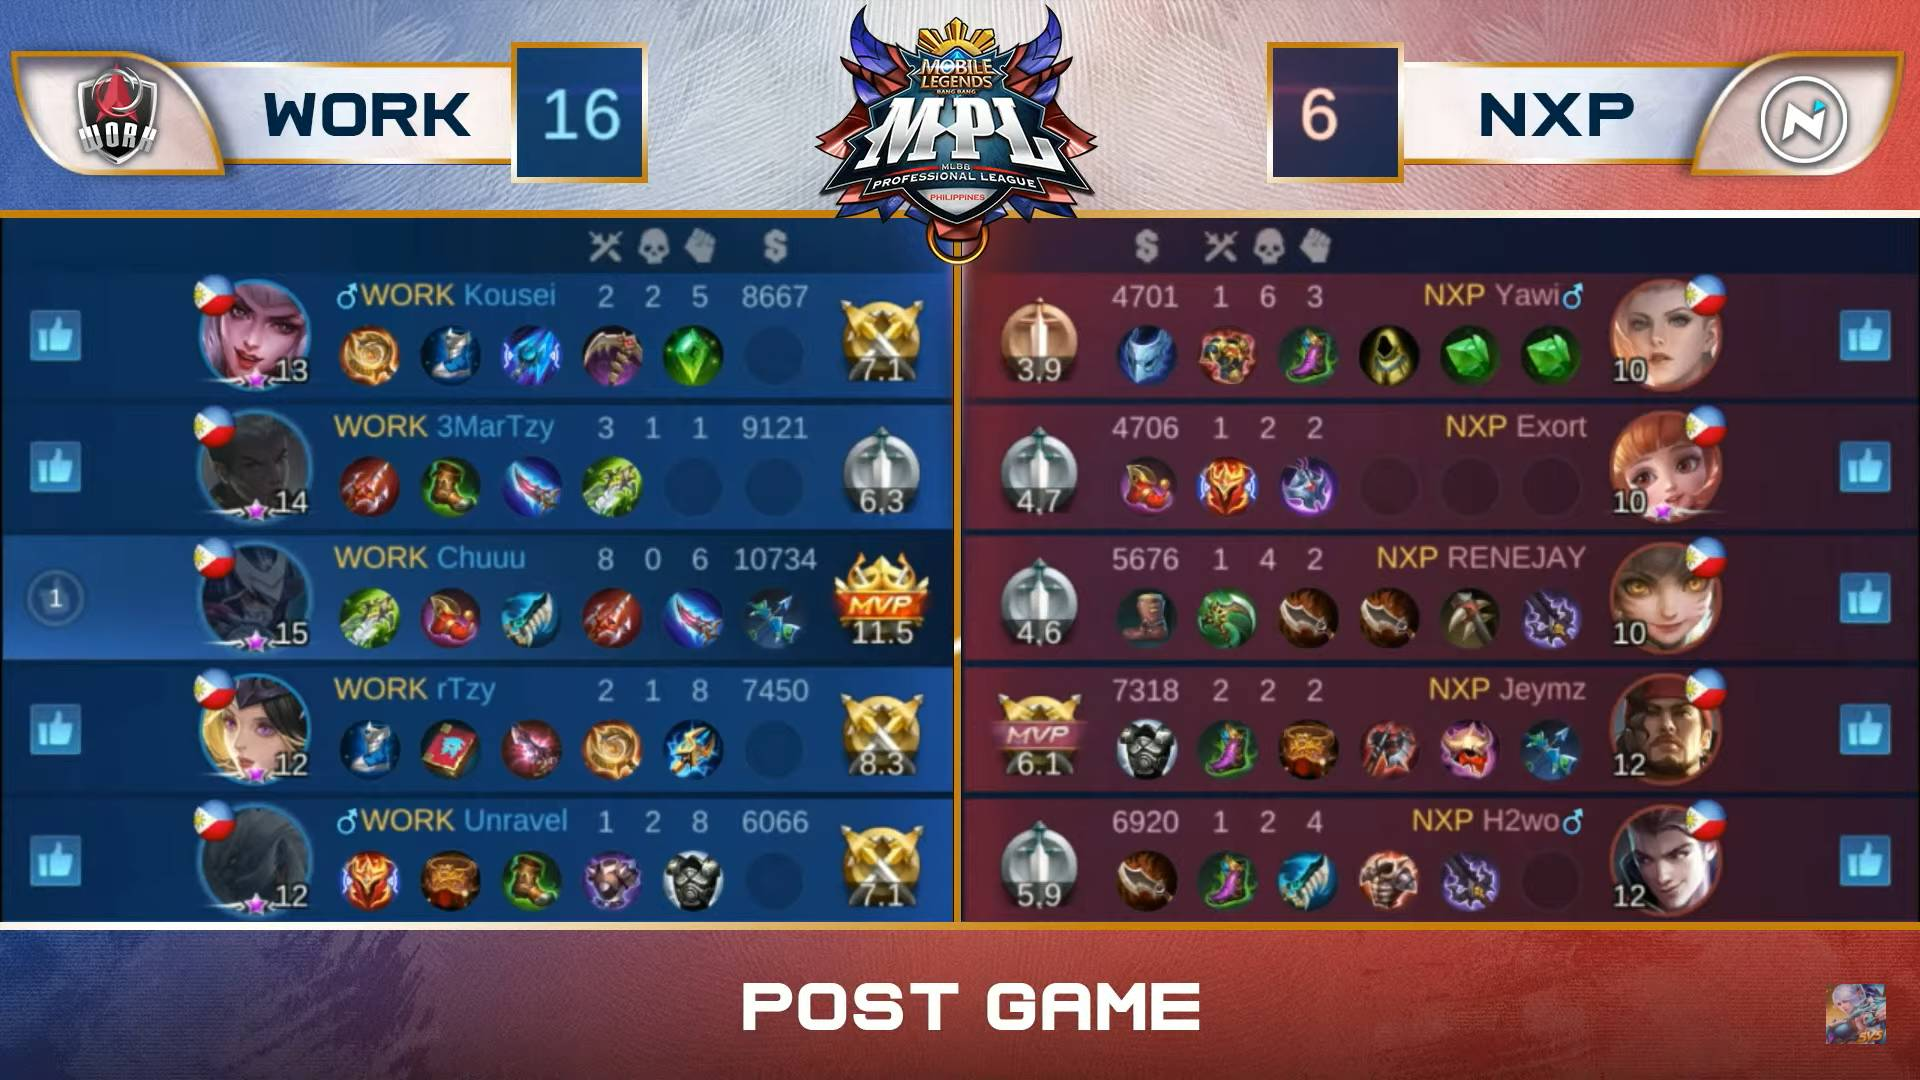 MPL-PH-7-Work-Auster-def-Nexplay-Game-3 Work Auster notches first-ever MPL-PH win, shocks Nexplay ESports Mobile Legends MPL-PH News  - philippine sports news